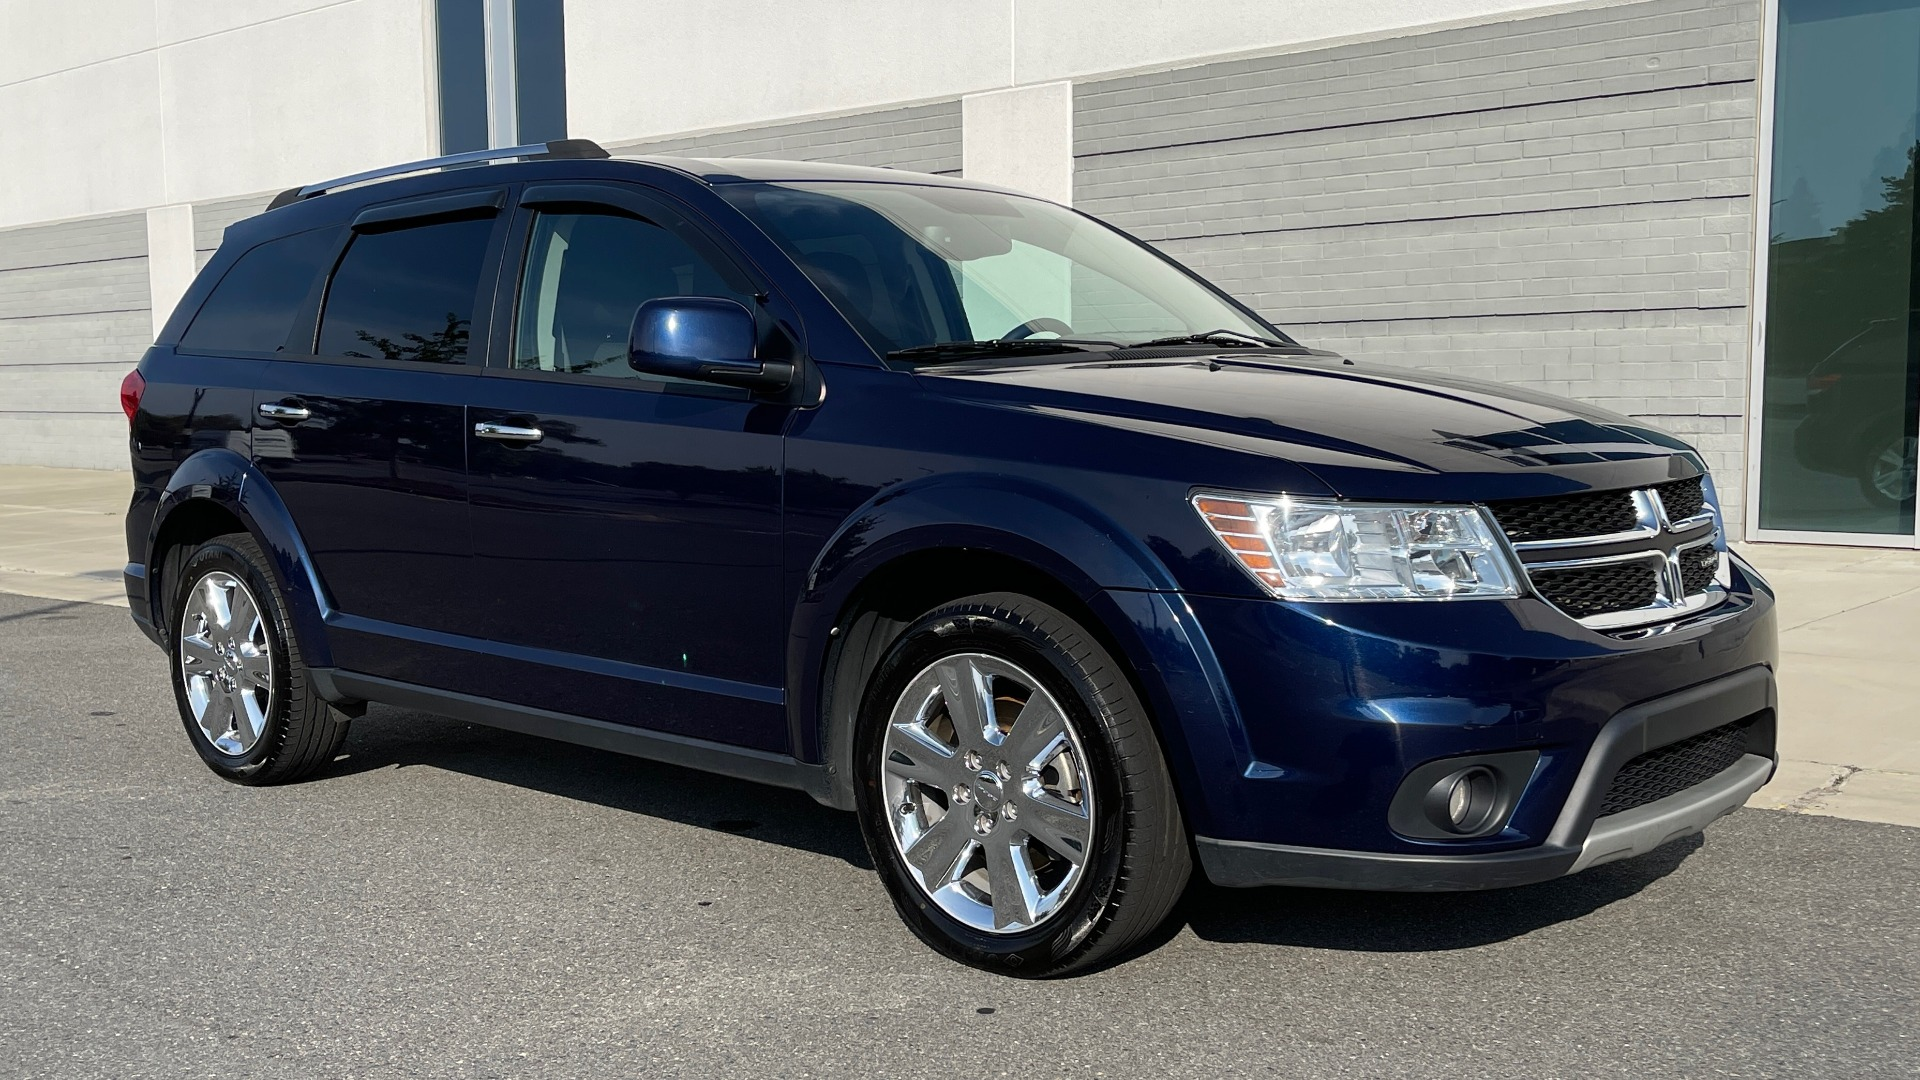 Used 2017 Dodge JOURNEY SXT PREMIUM / 2.4L / 4-SPD AUTO / KEYLESS-GO / 3-ROW / 19IN WHEELS for sale $15,995 at Formula Imports in Charlotte NC 28227 6